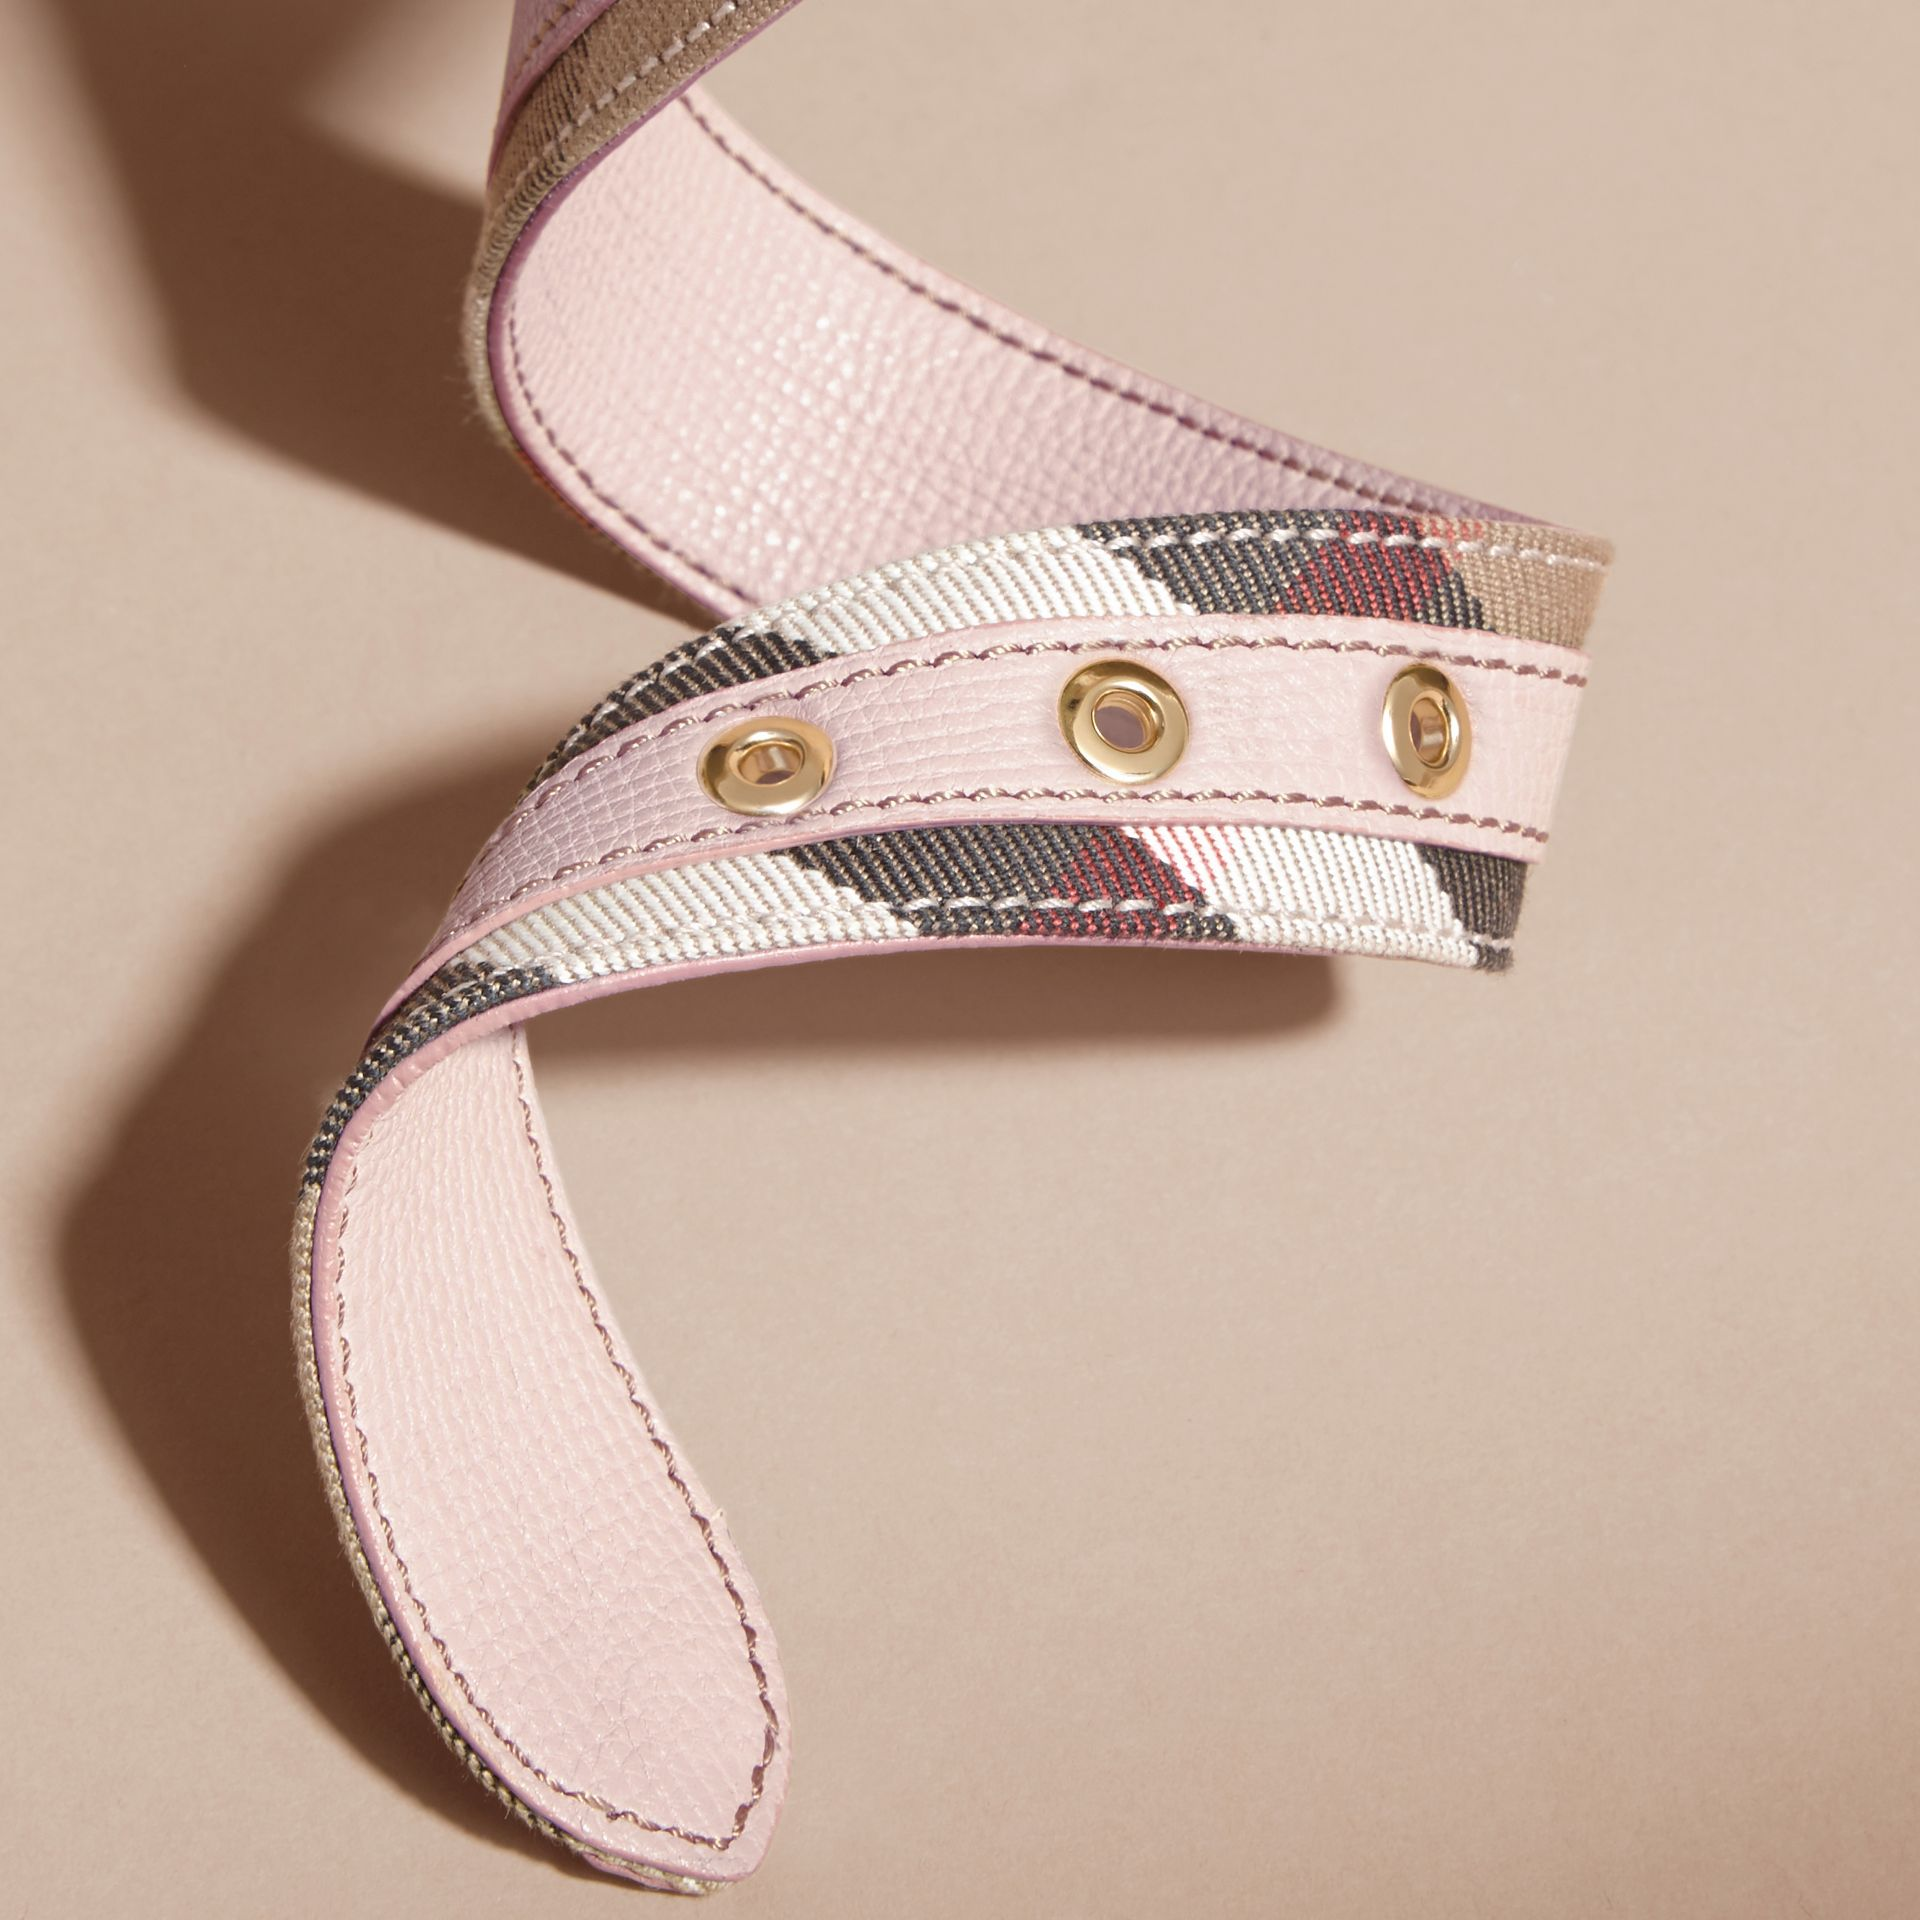 House Check and Grainy Leather Belt in Camel/pale Orchid - Women | Burberry - gallery image 4